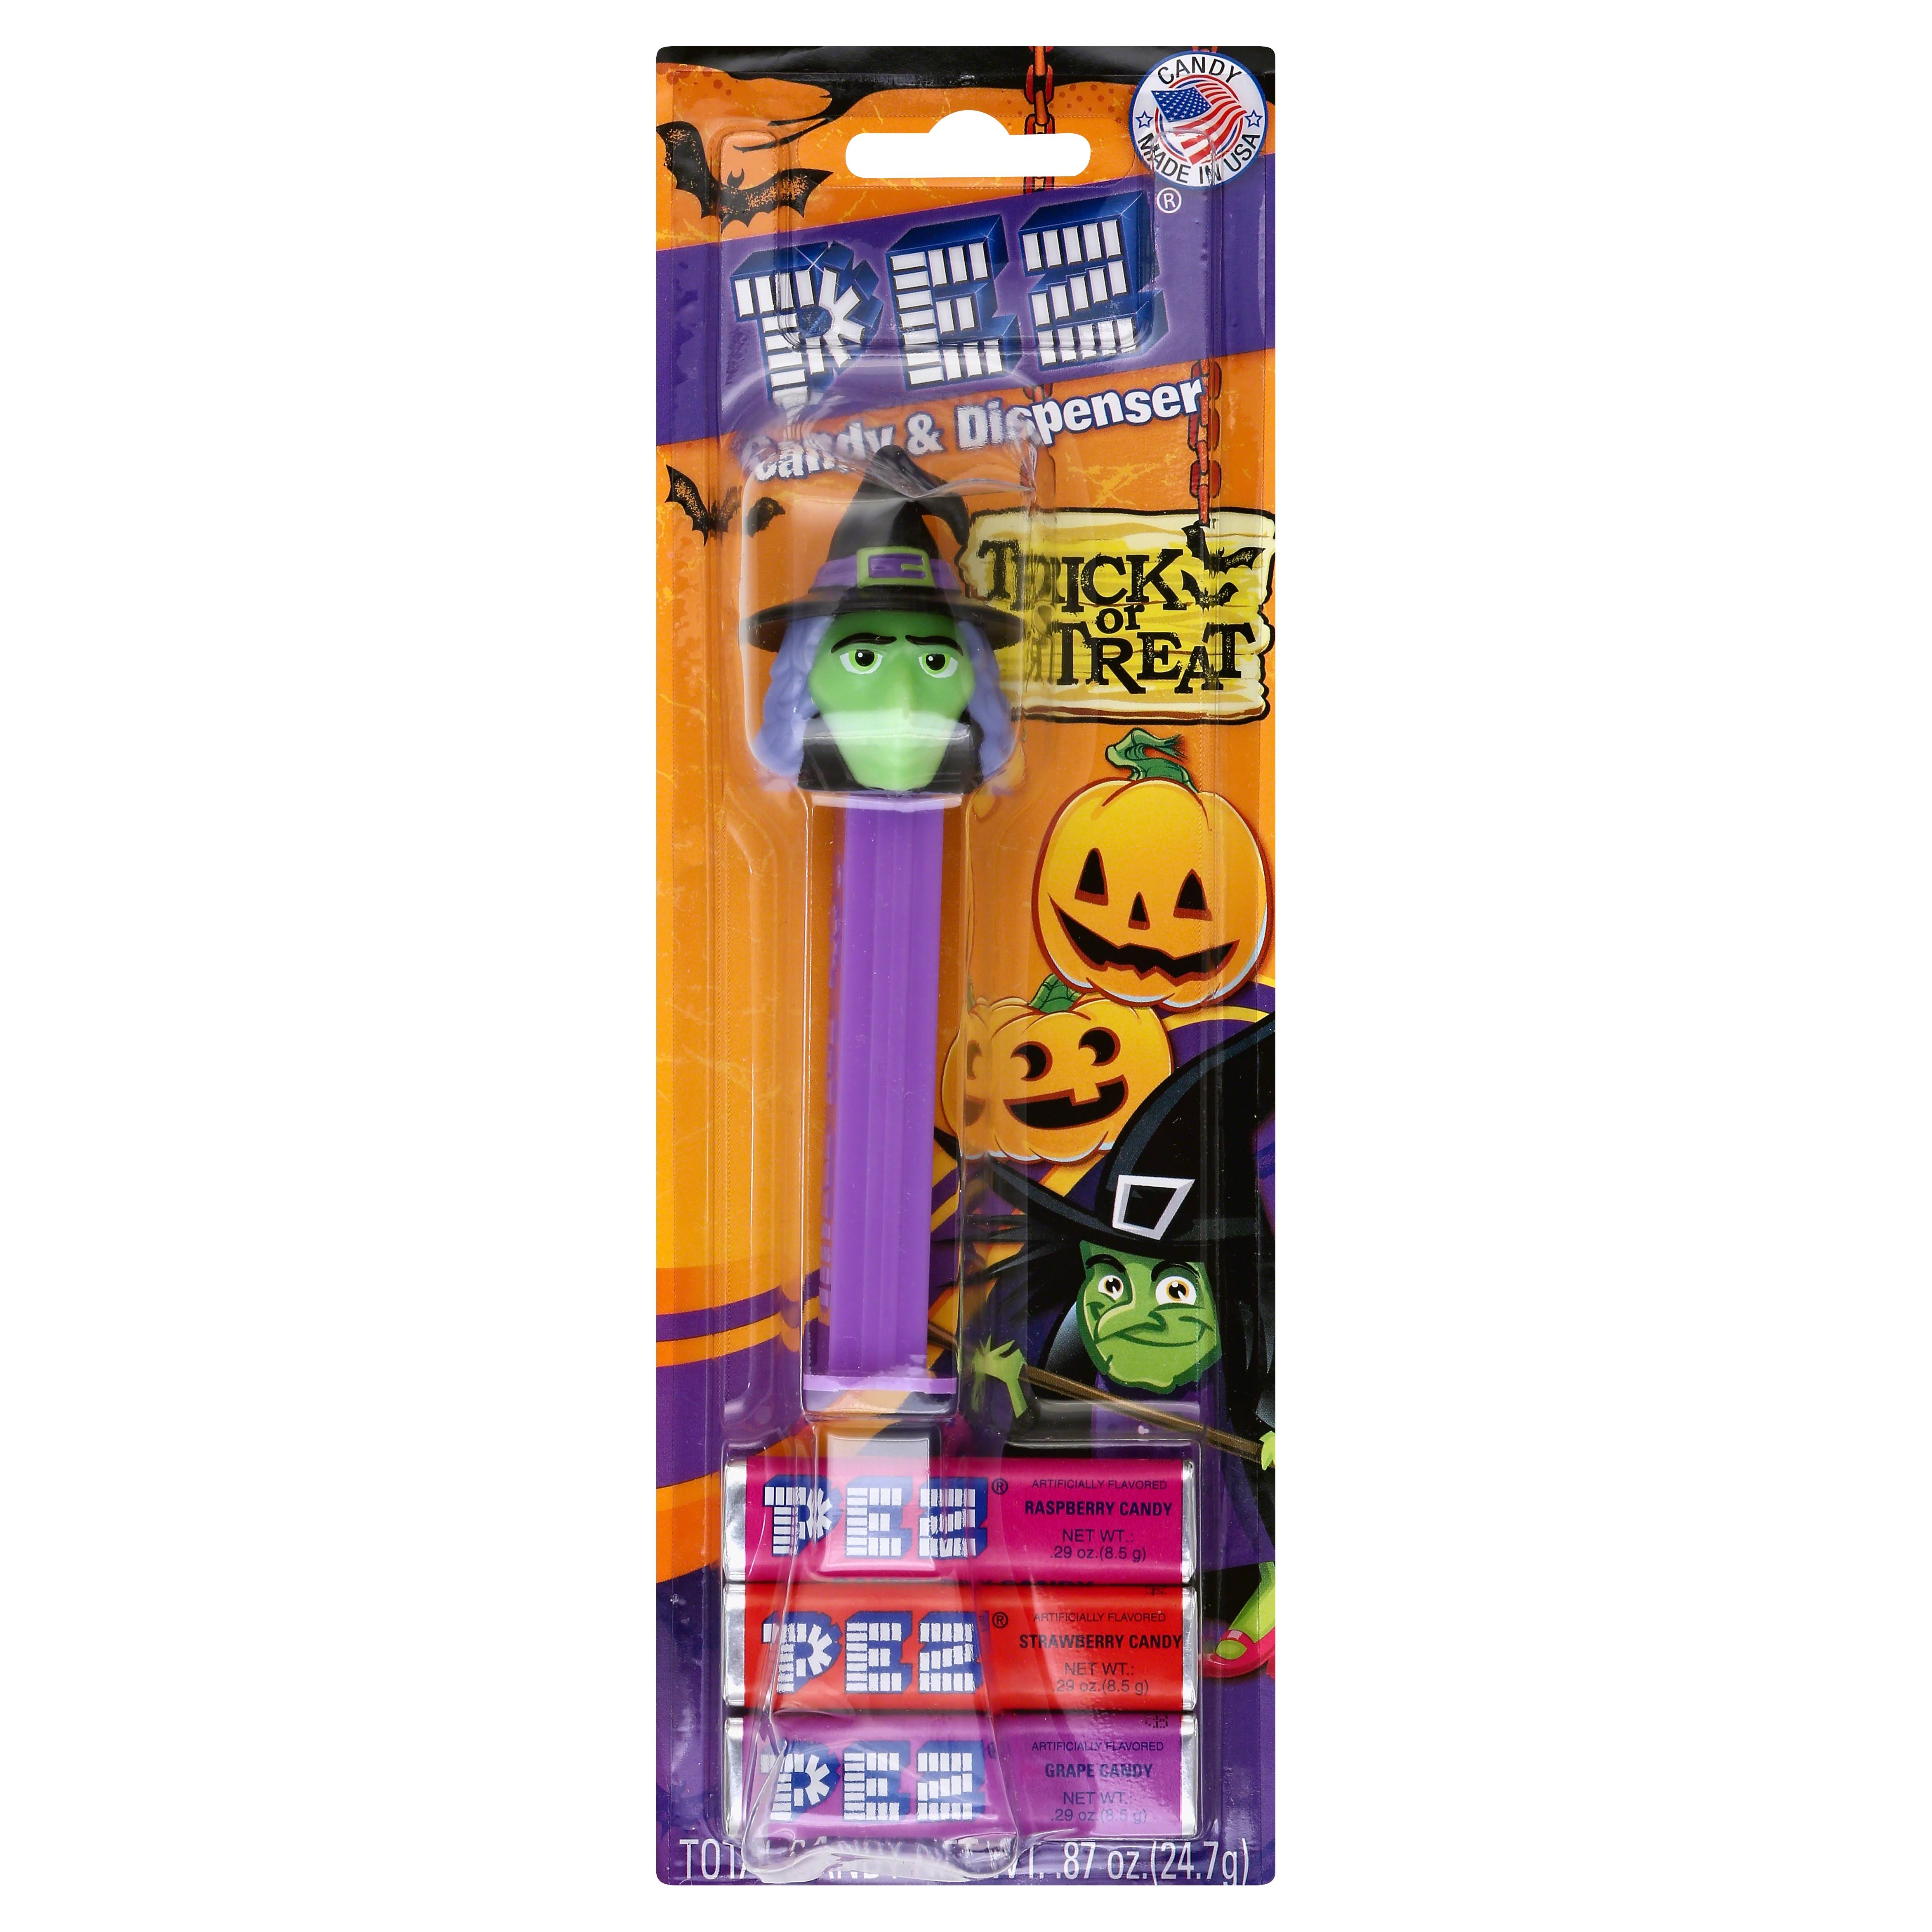 PEZ Candy & Dispenser, Trick or Treat - 0.87 oz